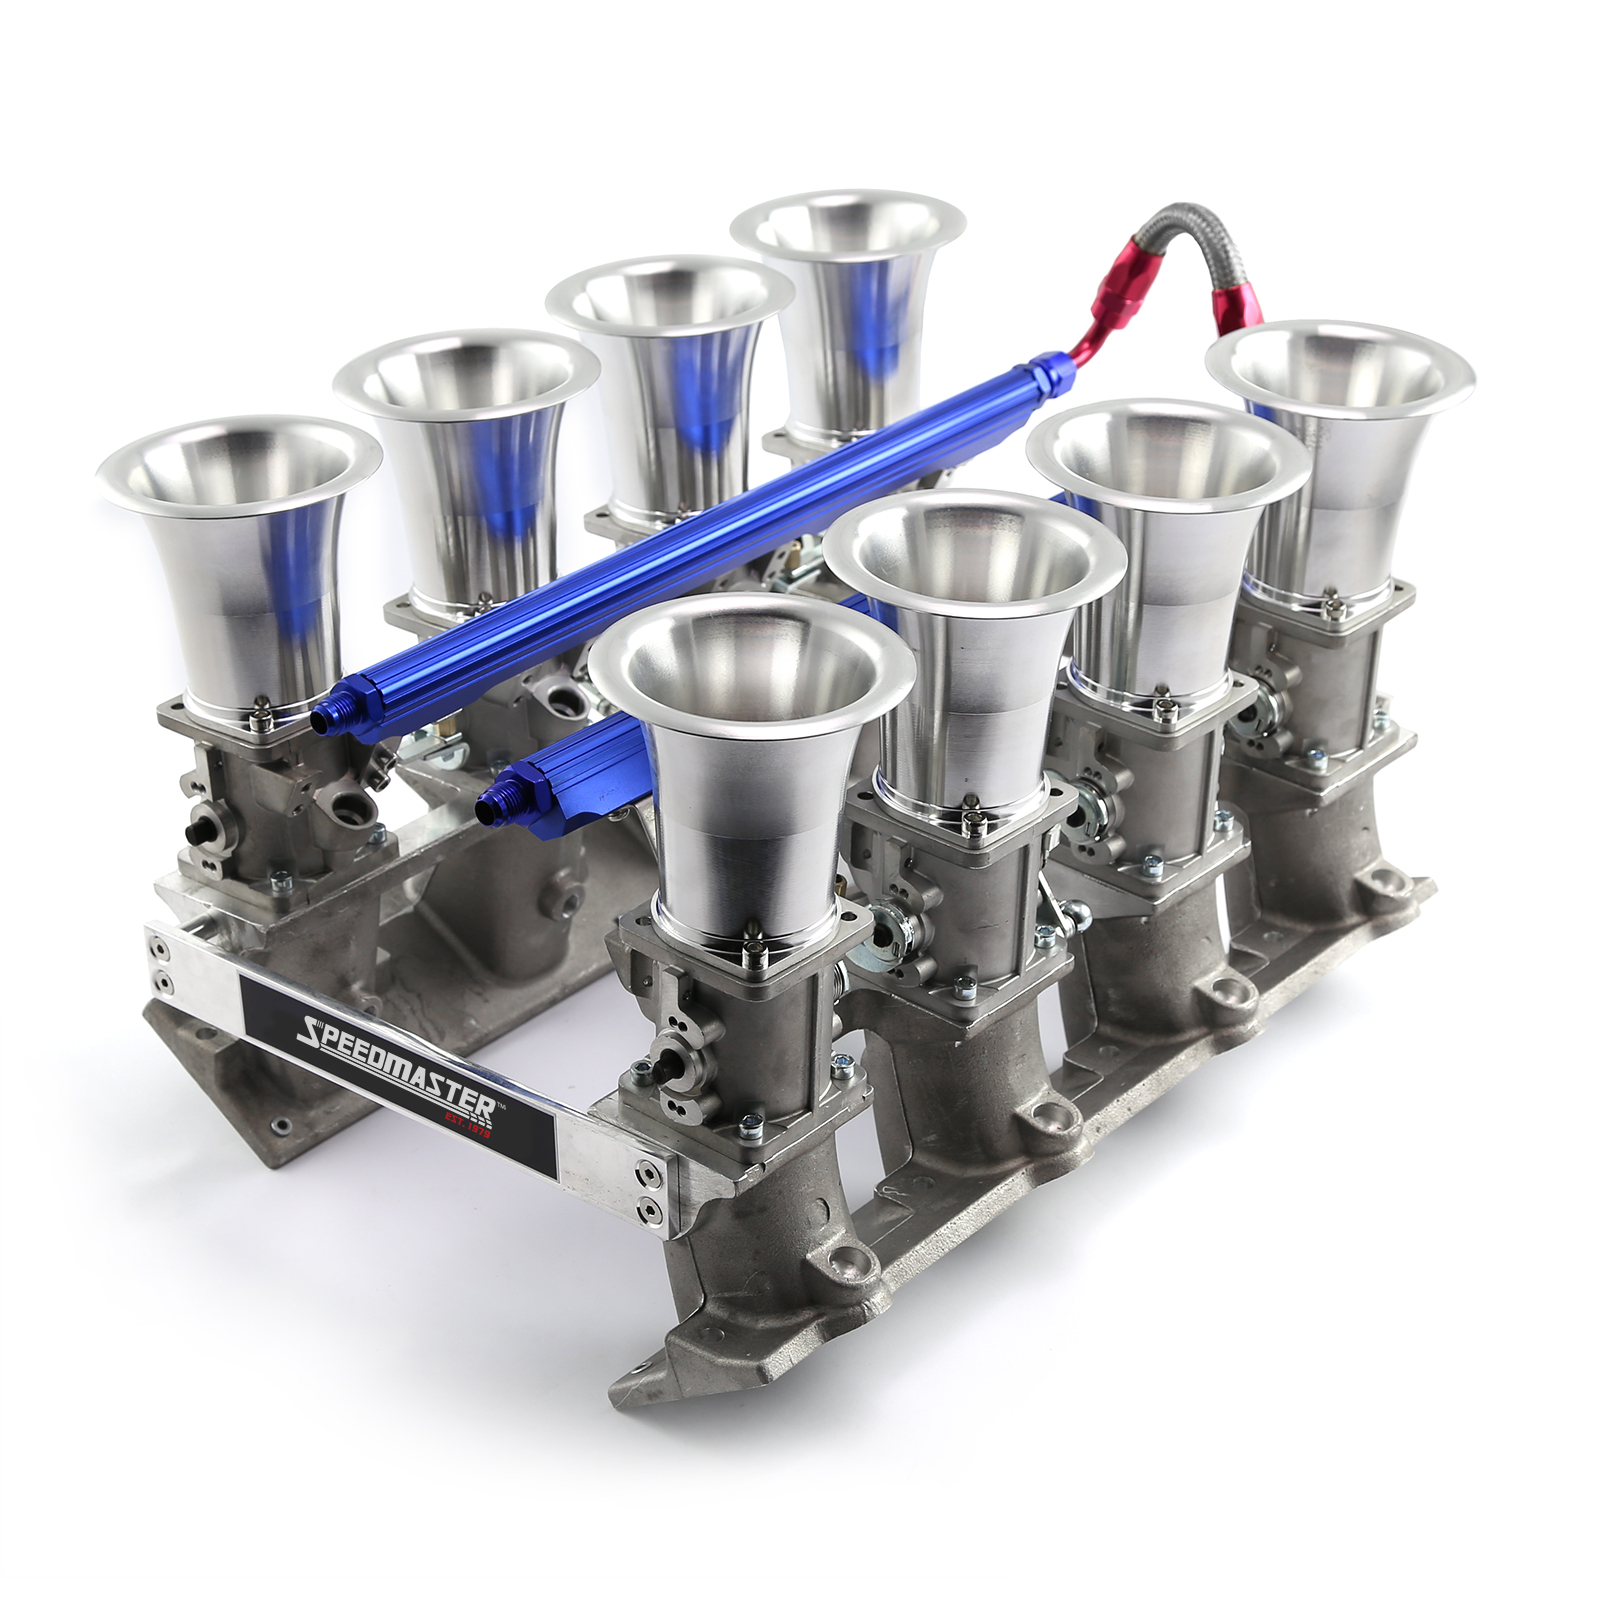 Chevy LS7 Down Draft EFI Stack Intake Manifold System